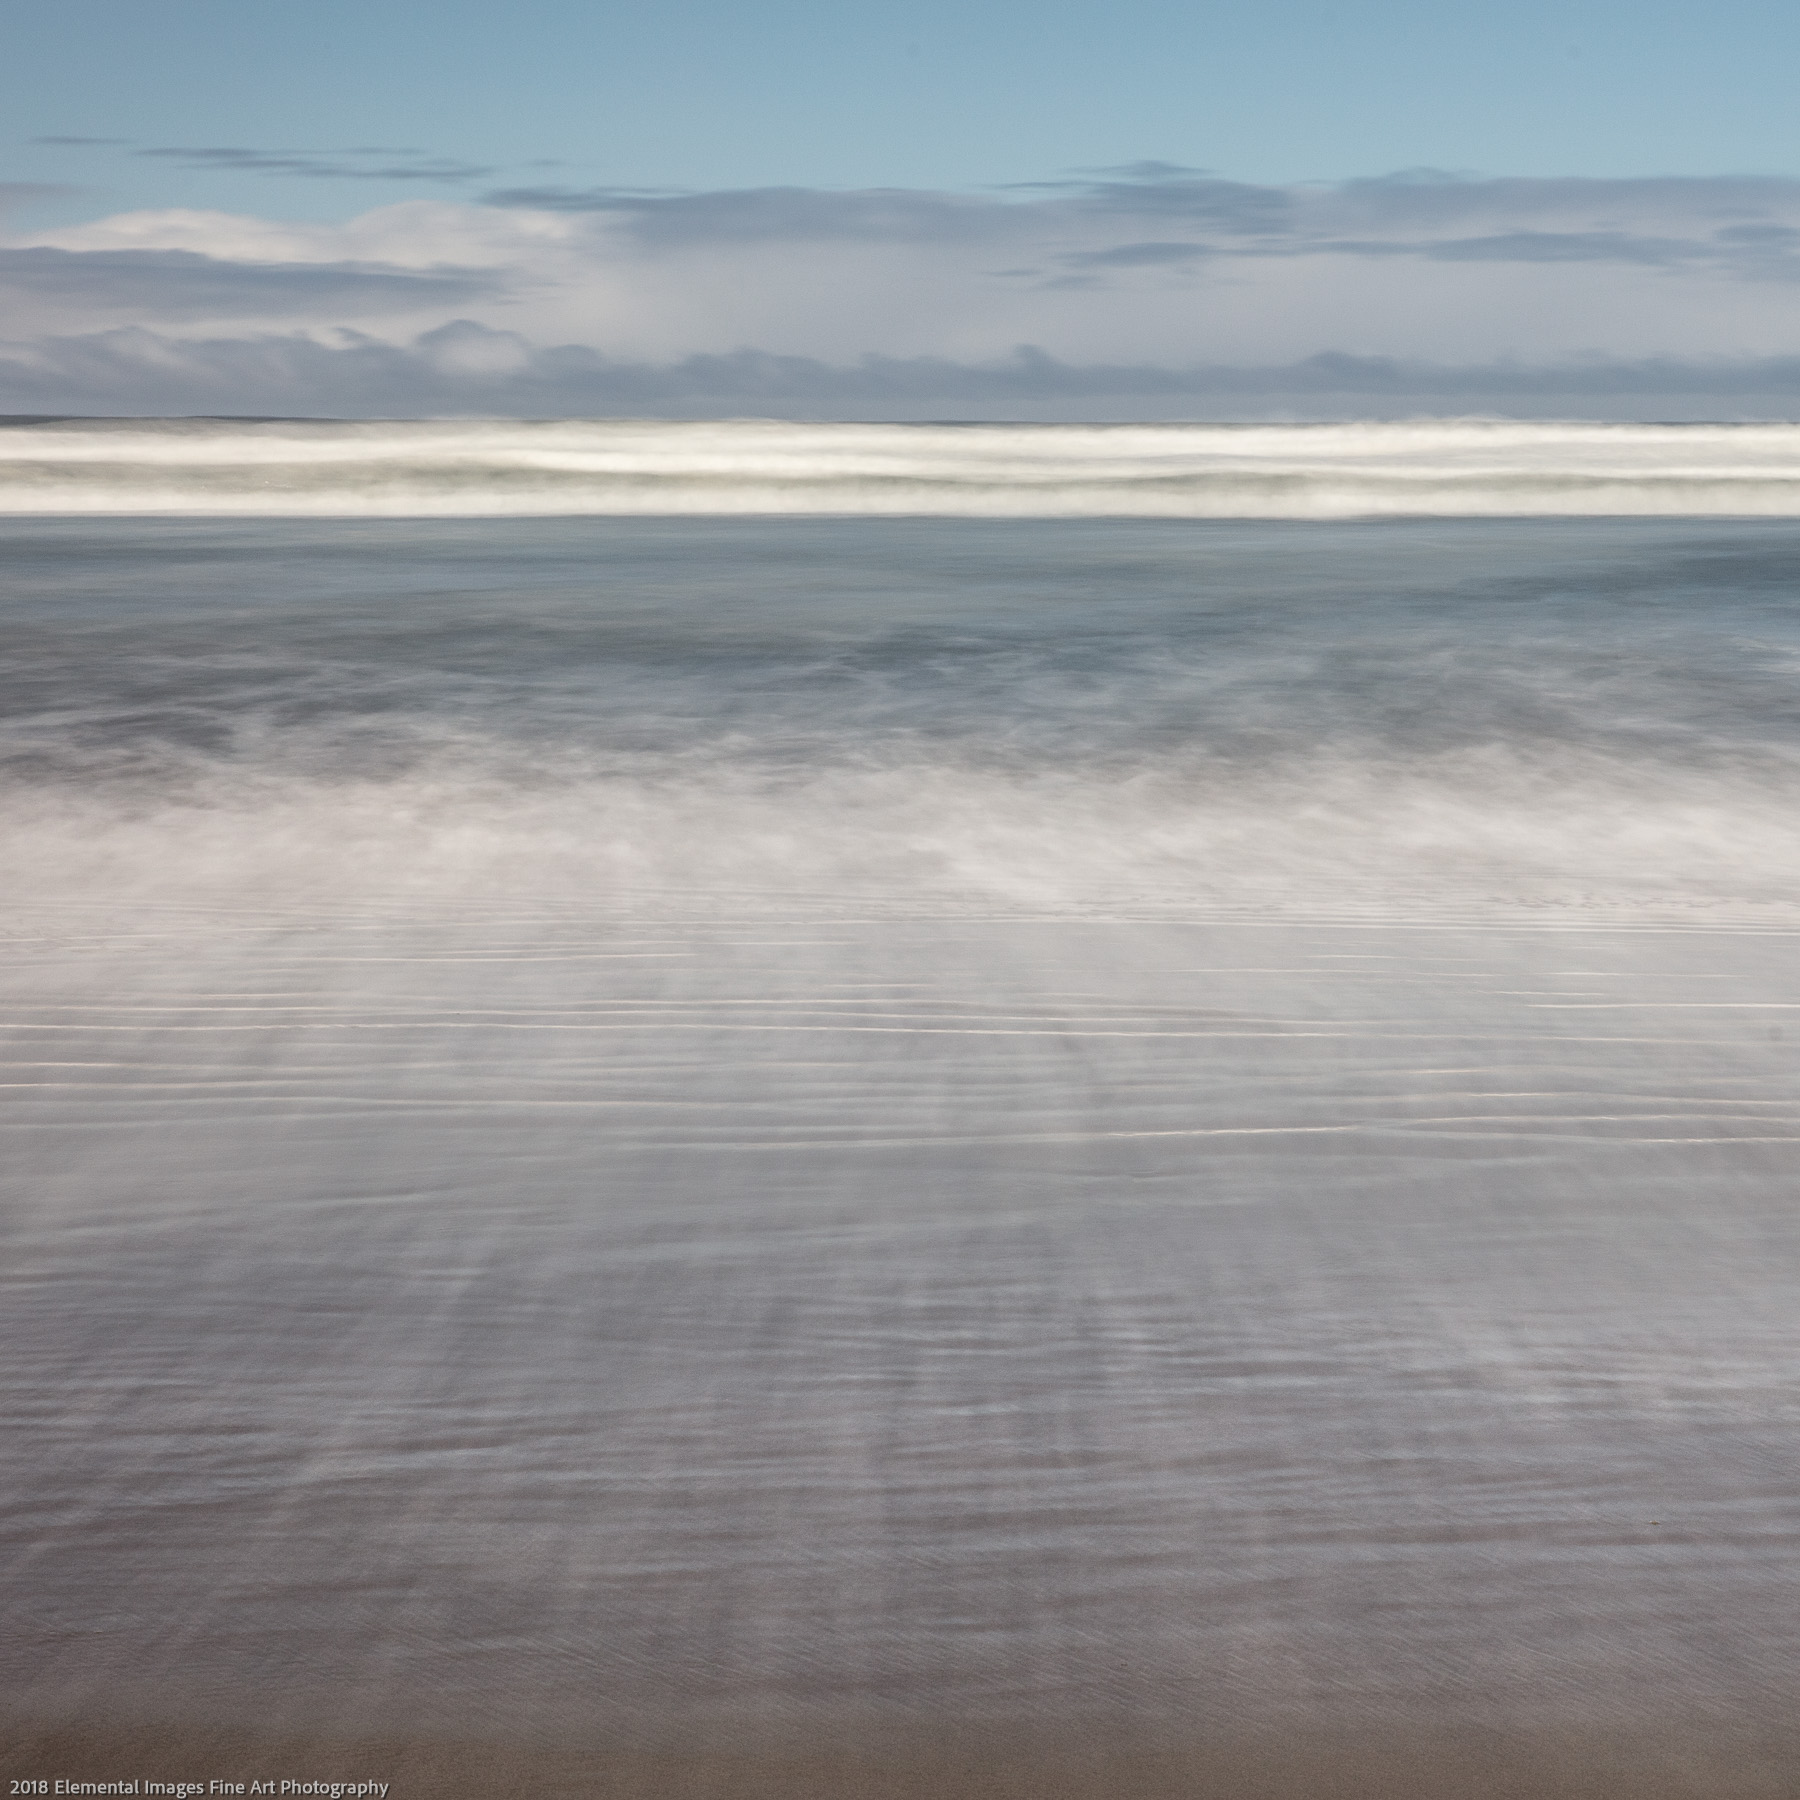 Sea and Sky #96 | Bandon | OR | USA - © 2018 Elemental Images Fine Art Photography - All Rights Reserved Worldwide